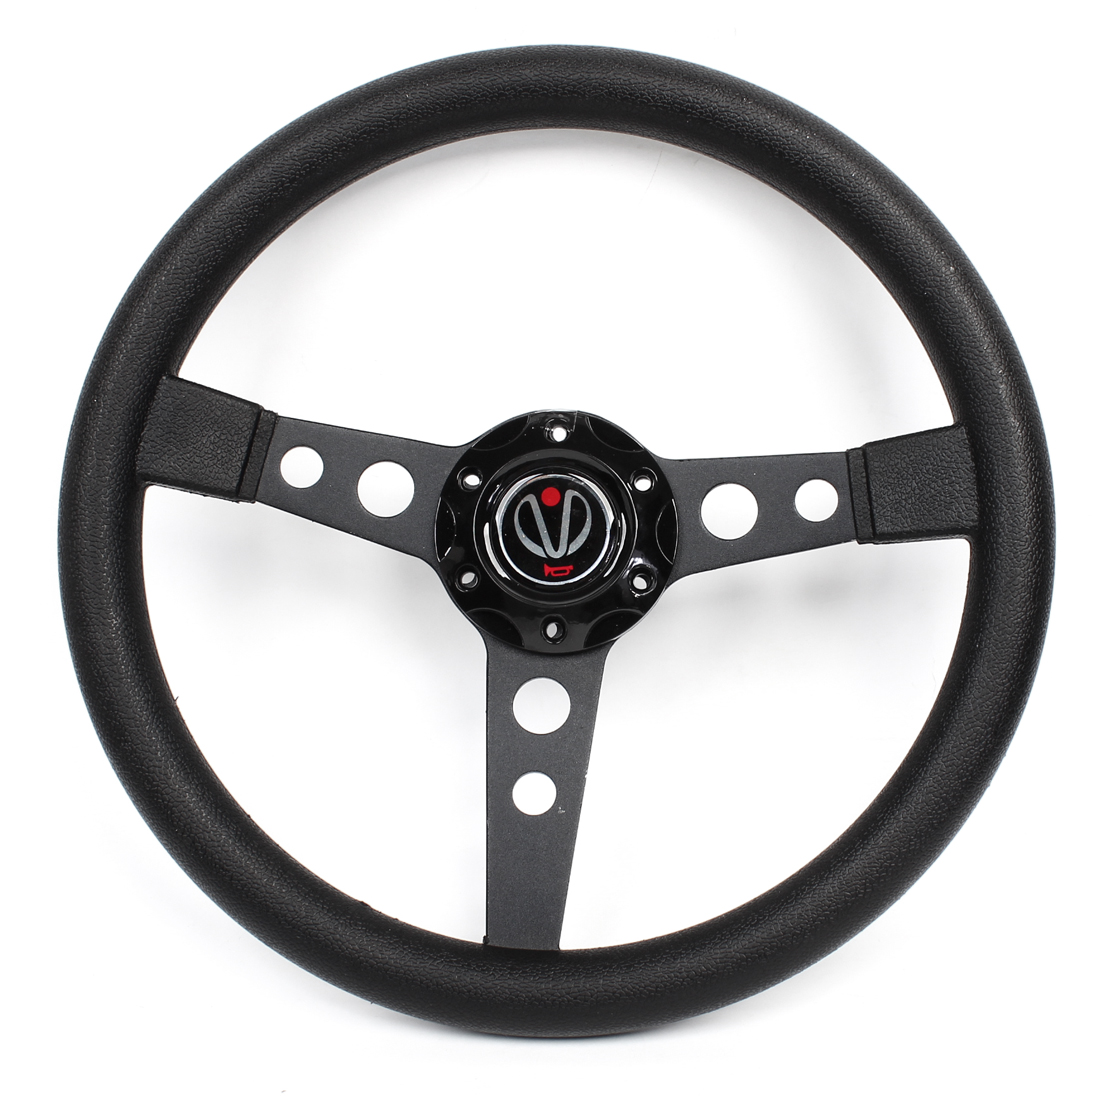 Black Faux Leather Wrapped 34.5cm Dia Racing Steering Wheel for Car